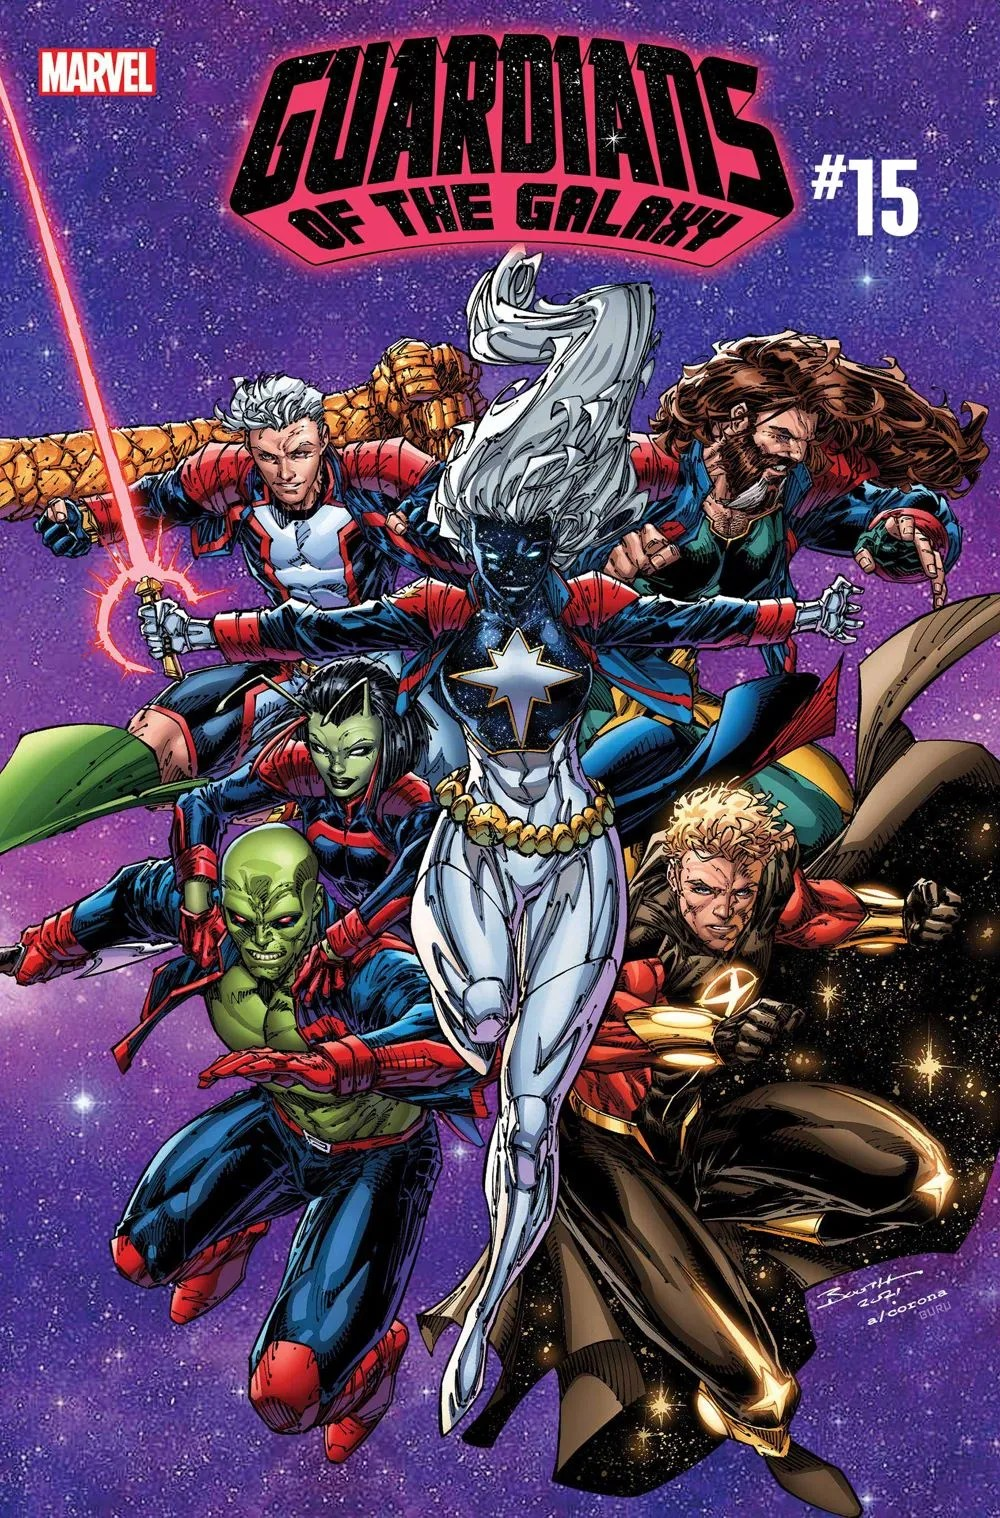 GARGAL2020015_cover First Look at GUARDIANS OF THE GALAXY #15 from Marvel Comics